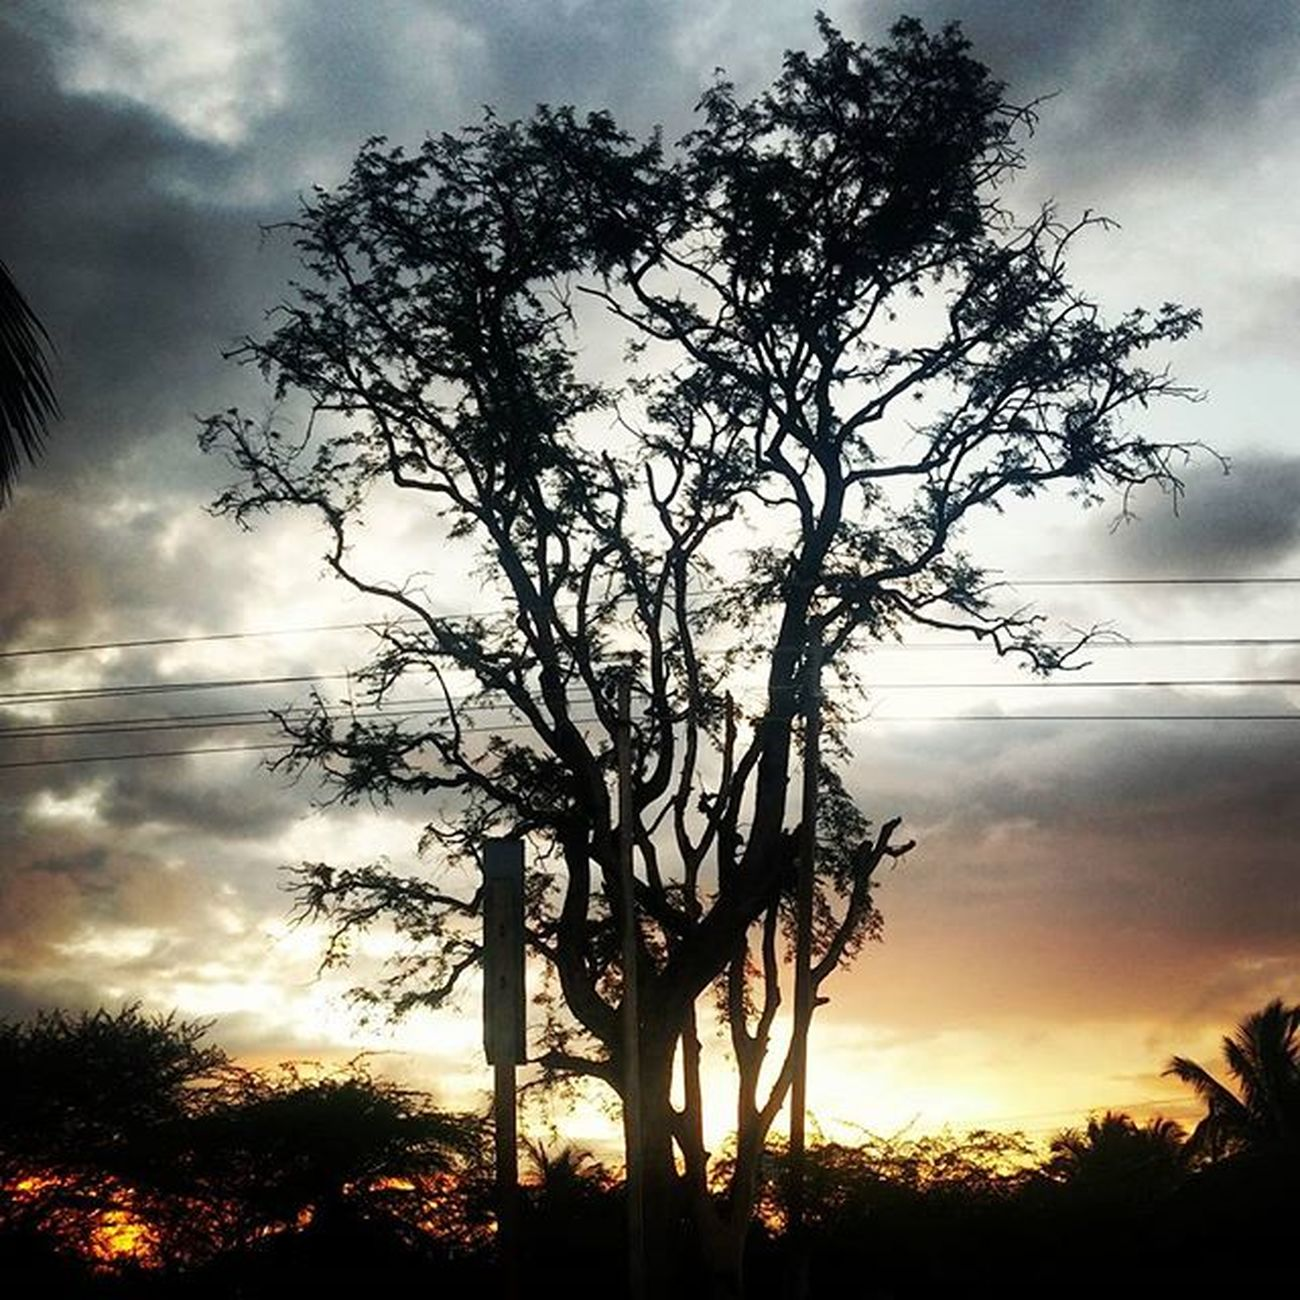 A black tree..!! Nature Is Awesome And Made Of Awesomeness Black Clouds Trees Branches Orange Sky Photography On Earth Naturalclick Like Love Live Green